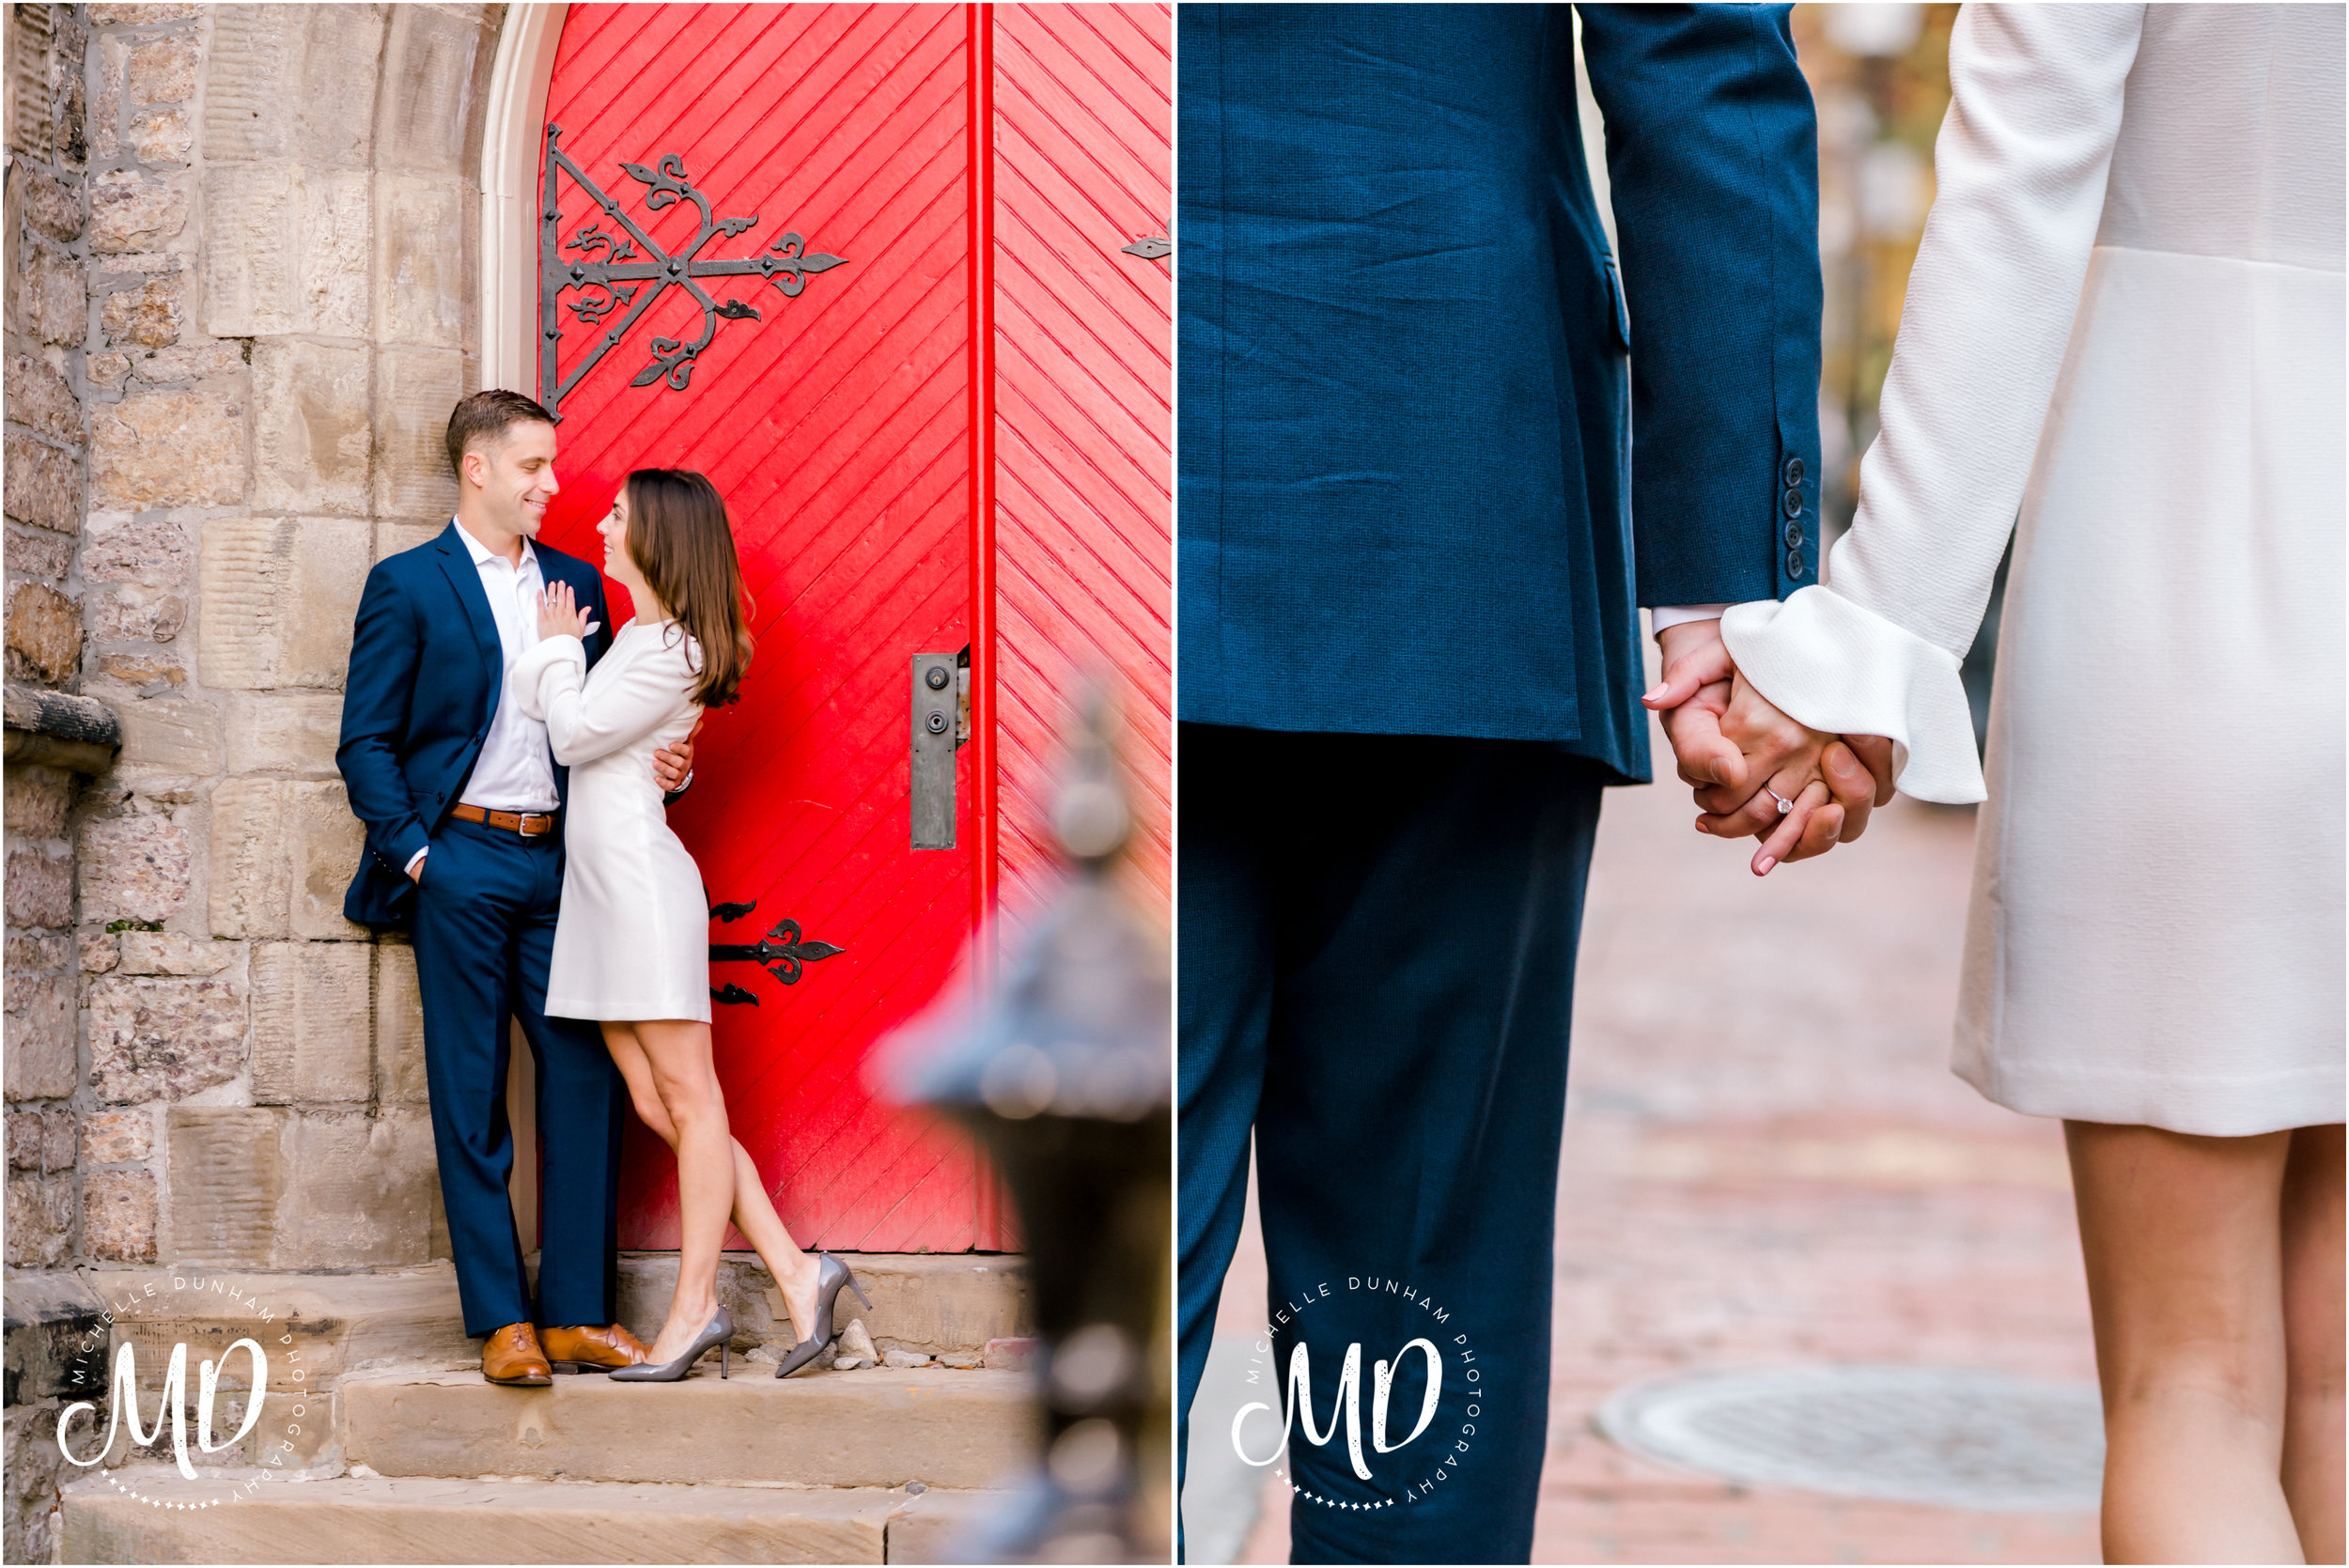 Michelle-Dunham-Photography-Engagement-South-End-Boston-6.jpg